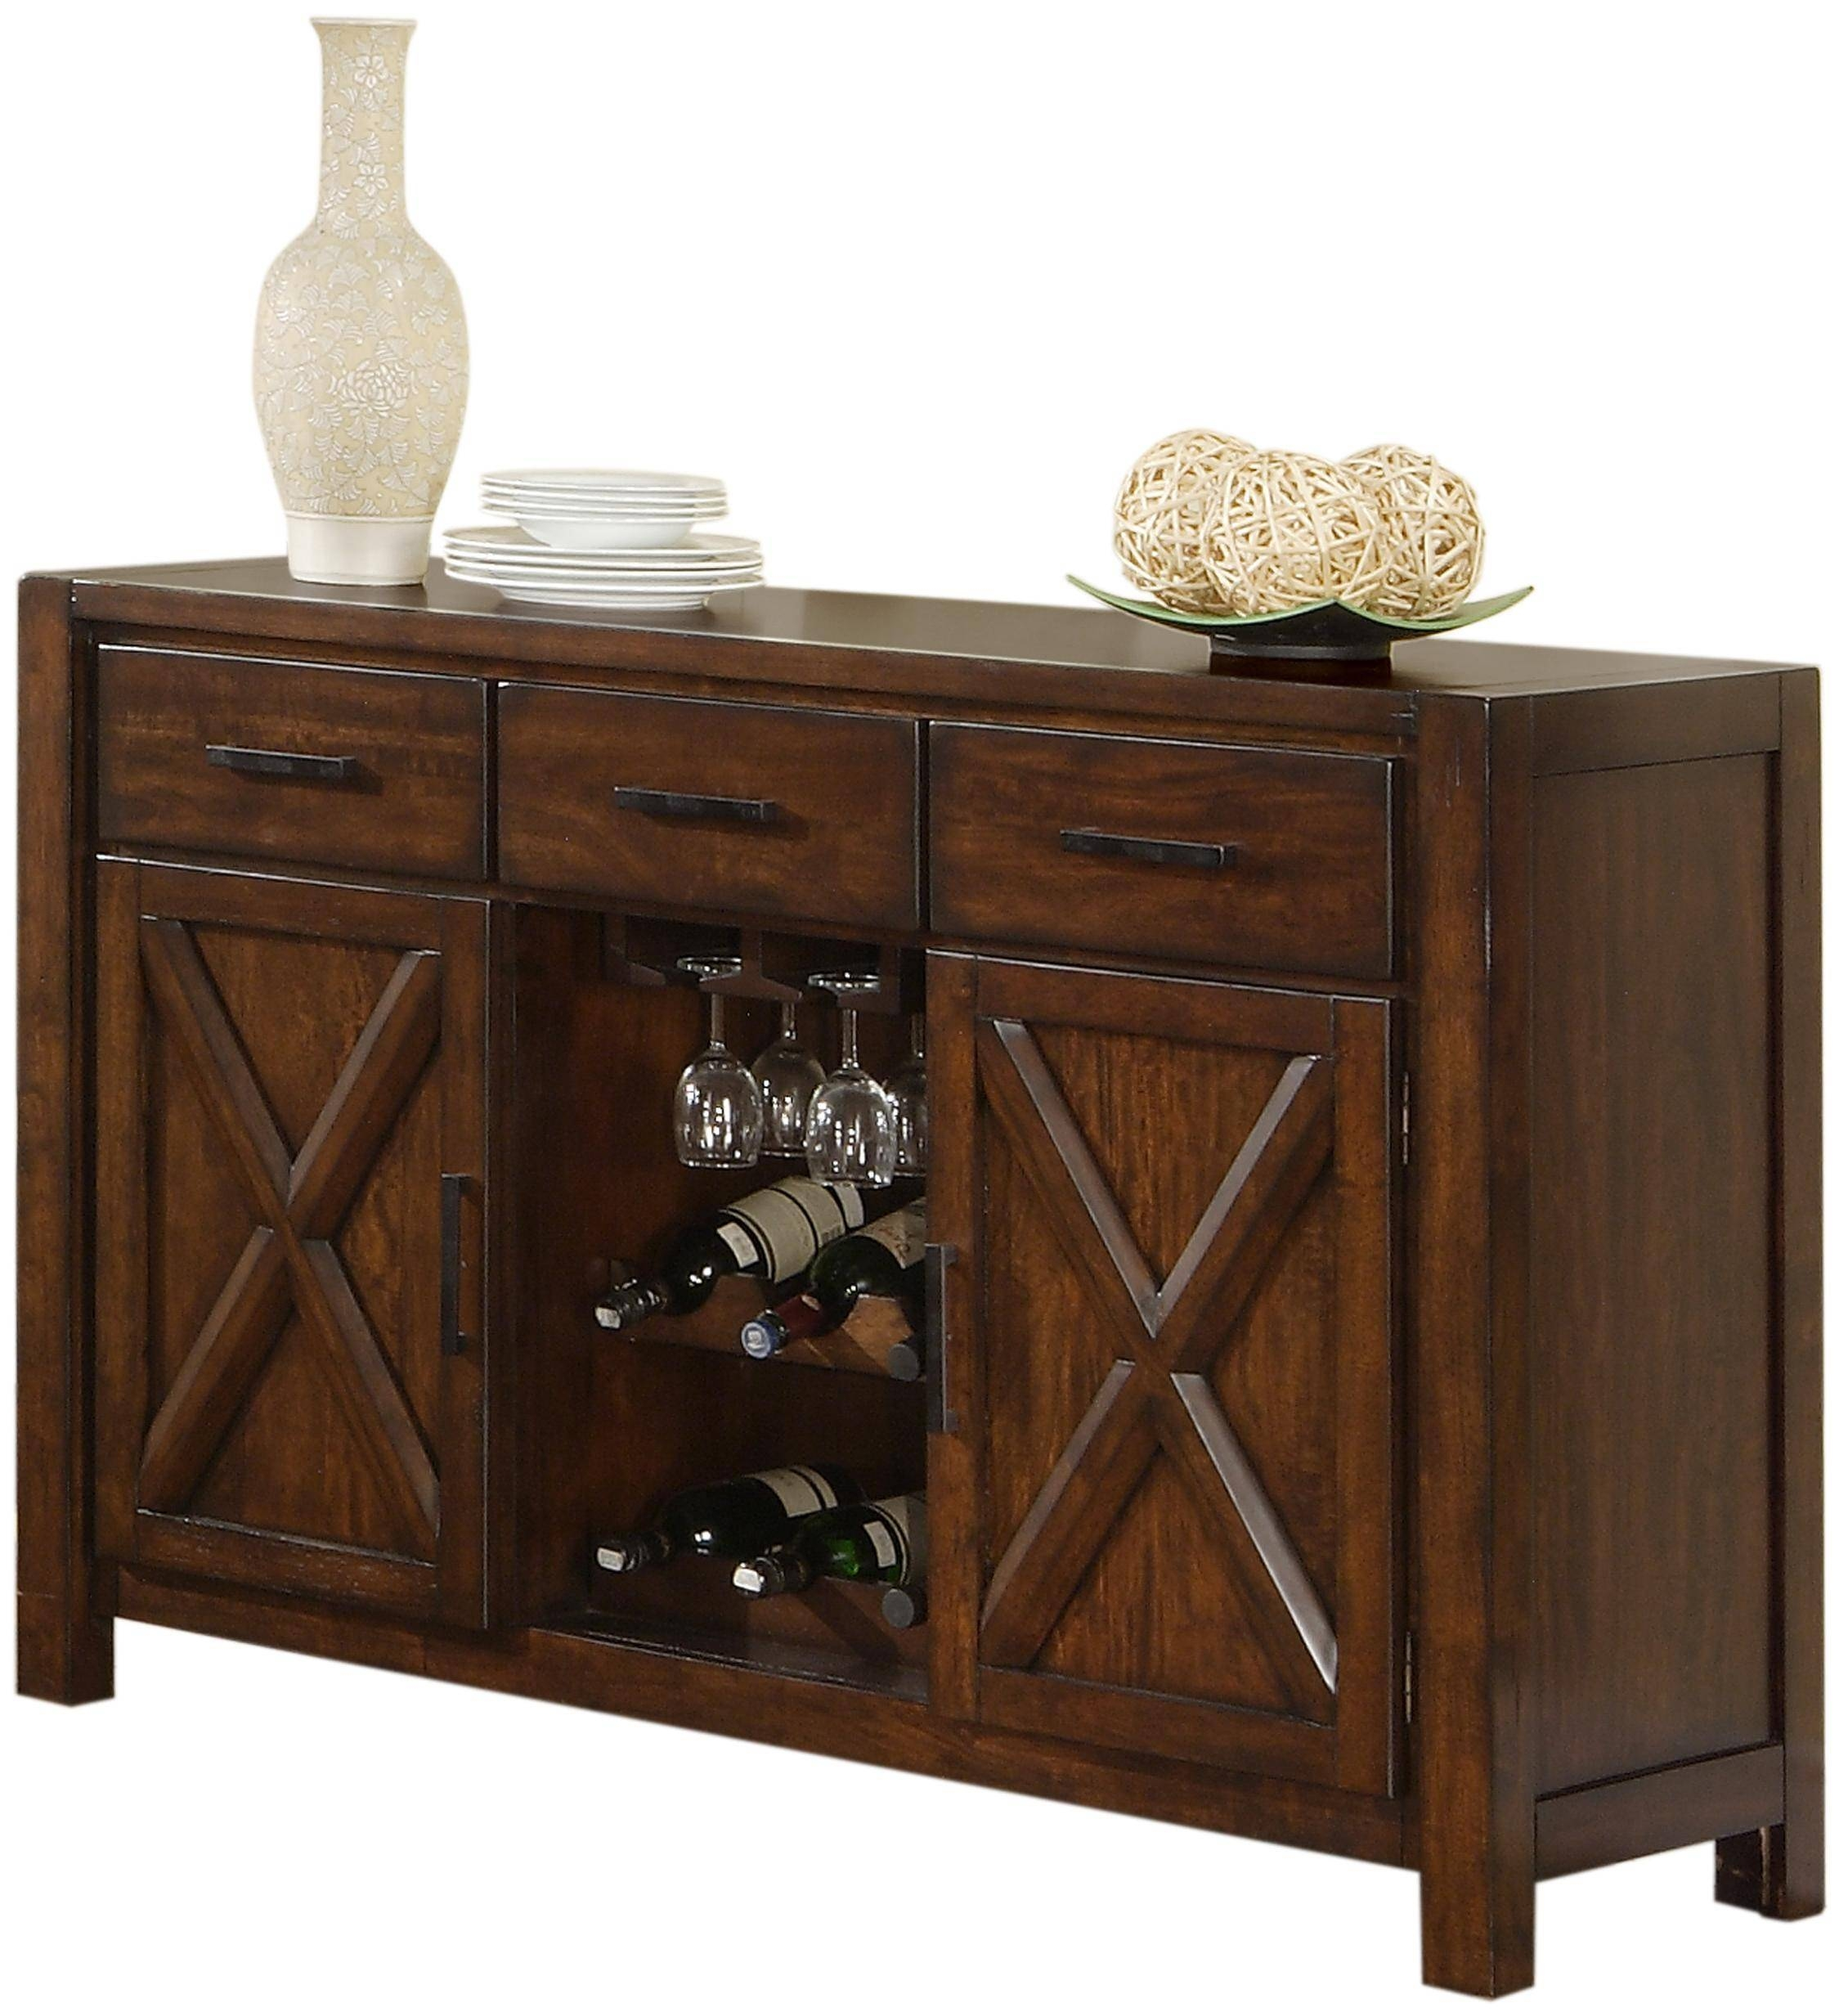 Holland House Lakeshore Dining Sideboard W/ Wine Rack And Stem For Latest Sideboards With Wine Rack (#6 of 15)